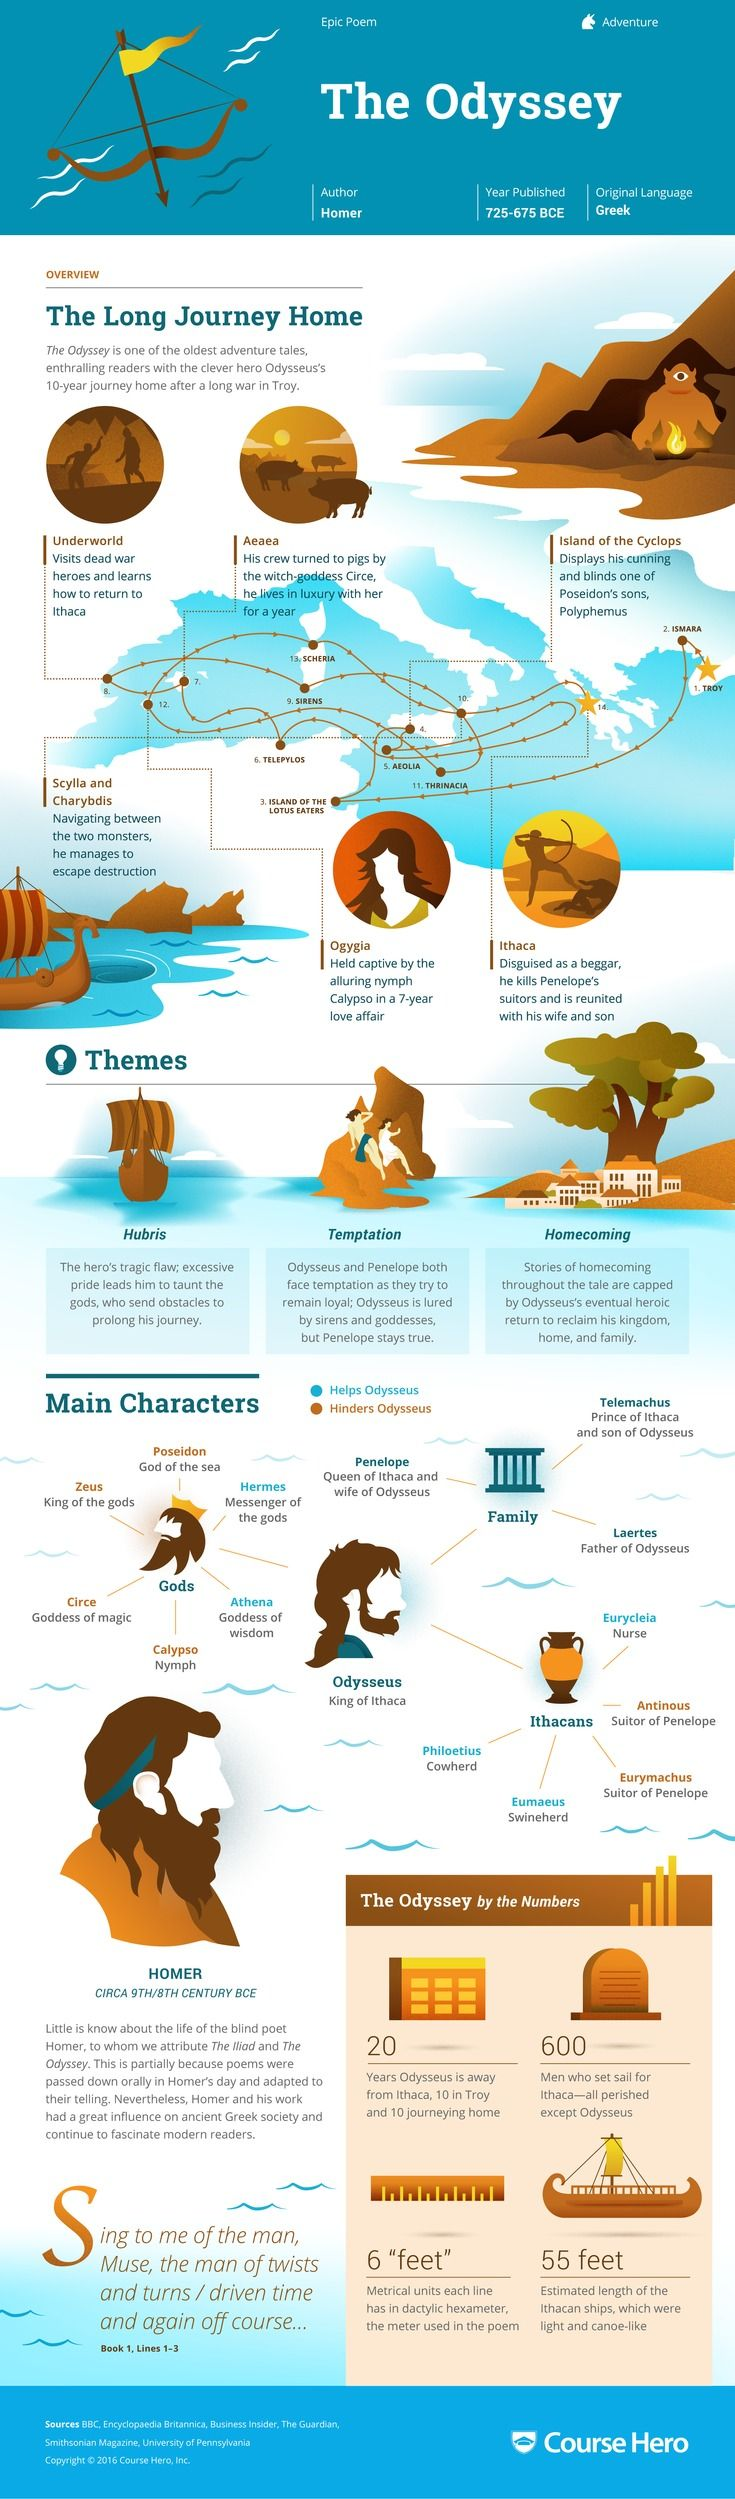 This @CourseHero infographic on The Odyssey is both visually stunning and informative!